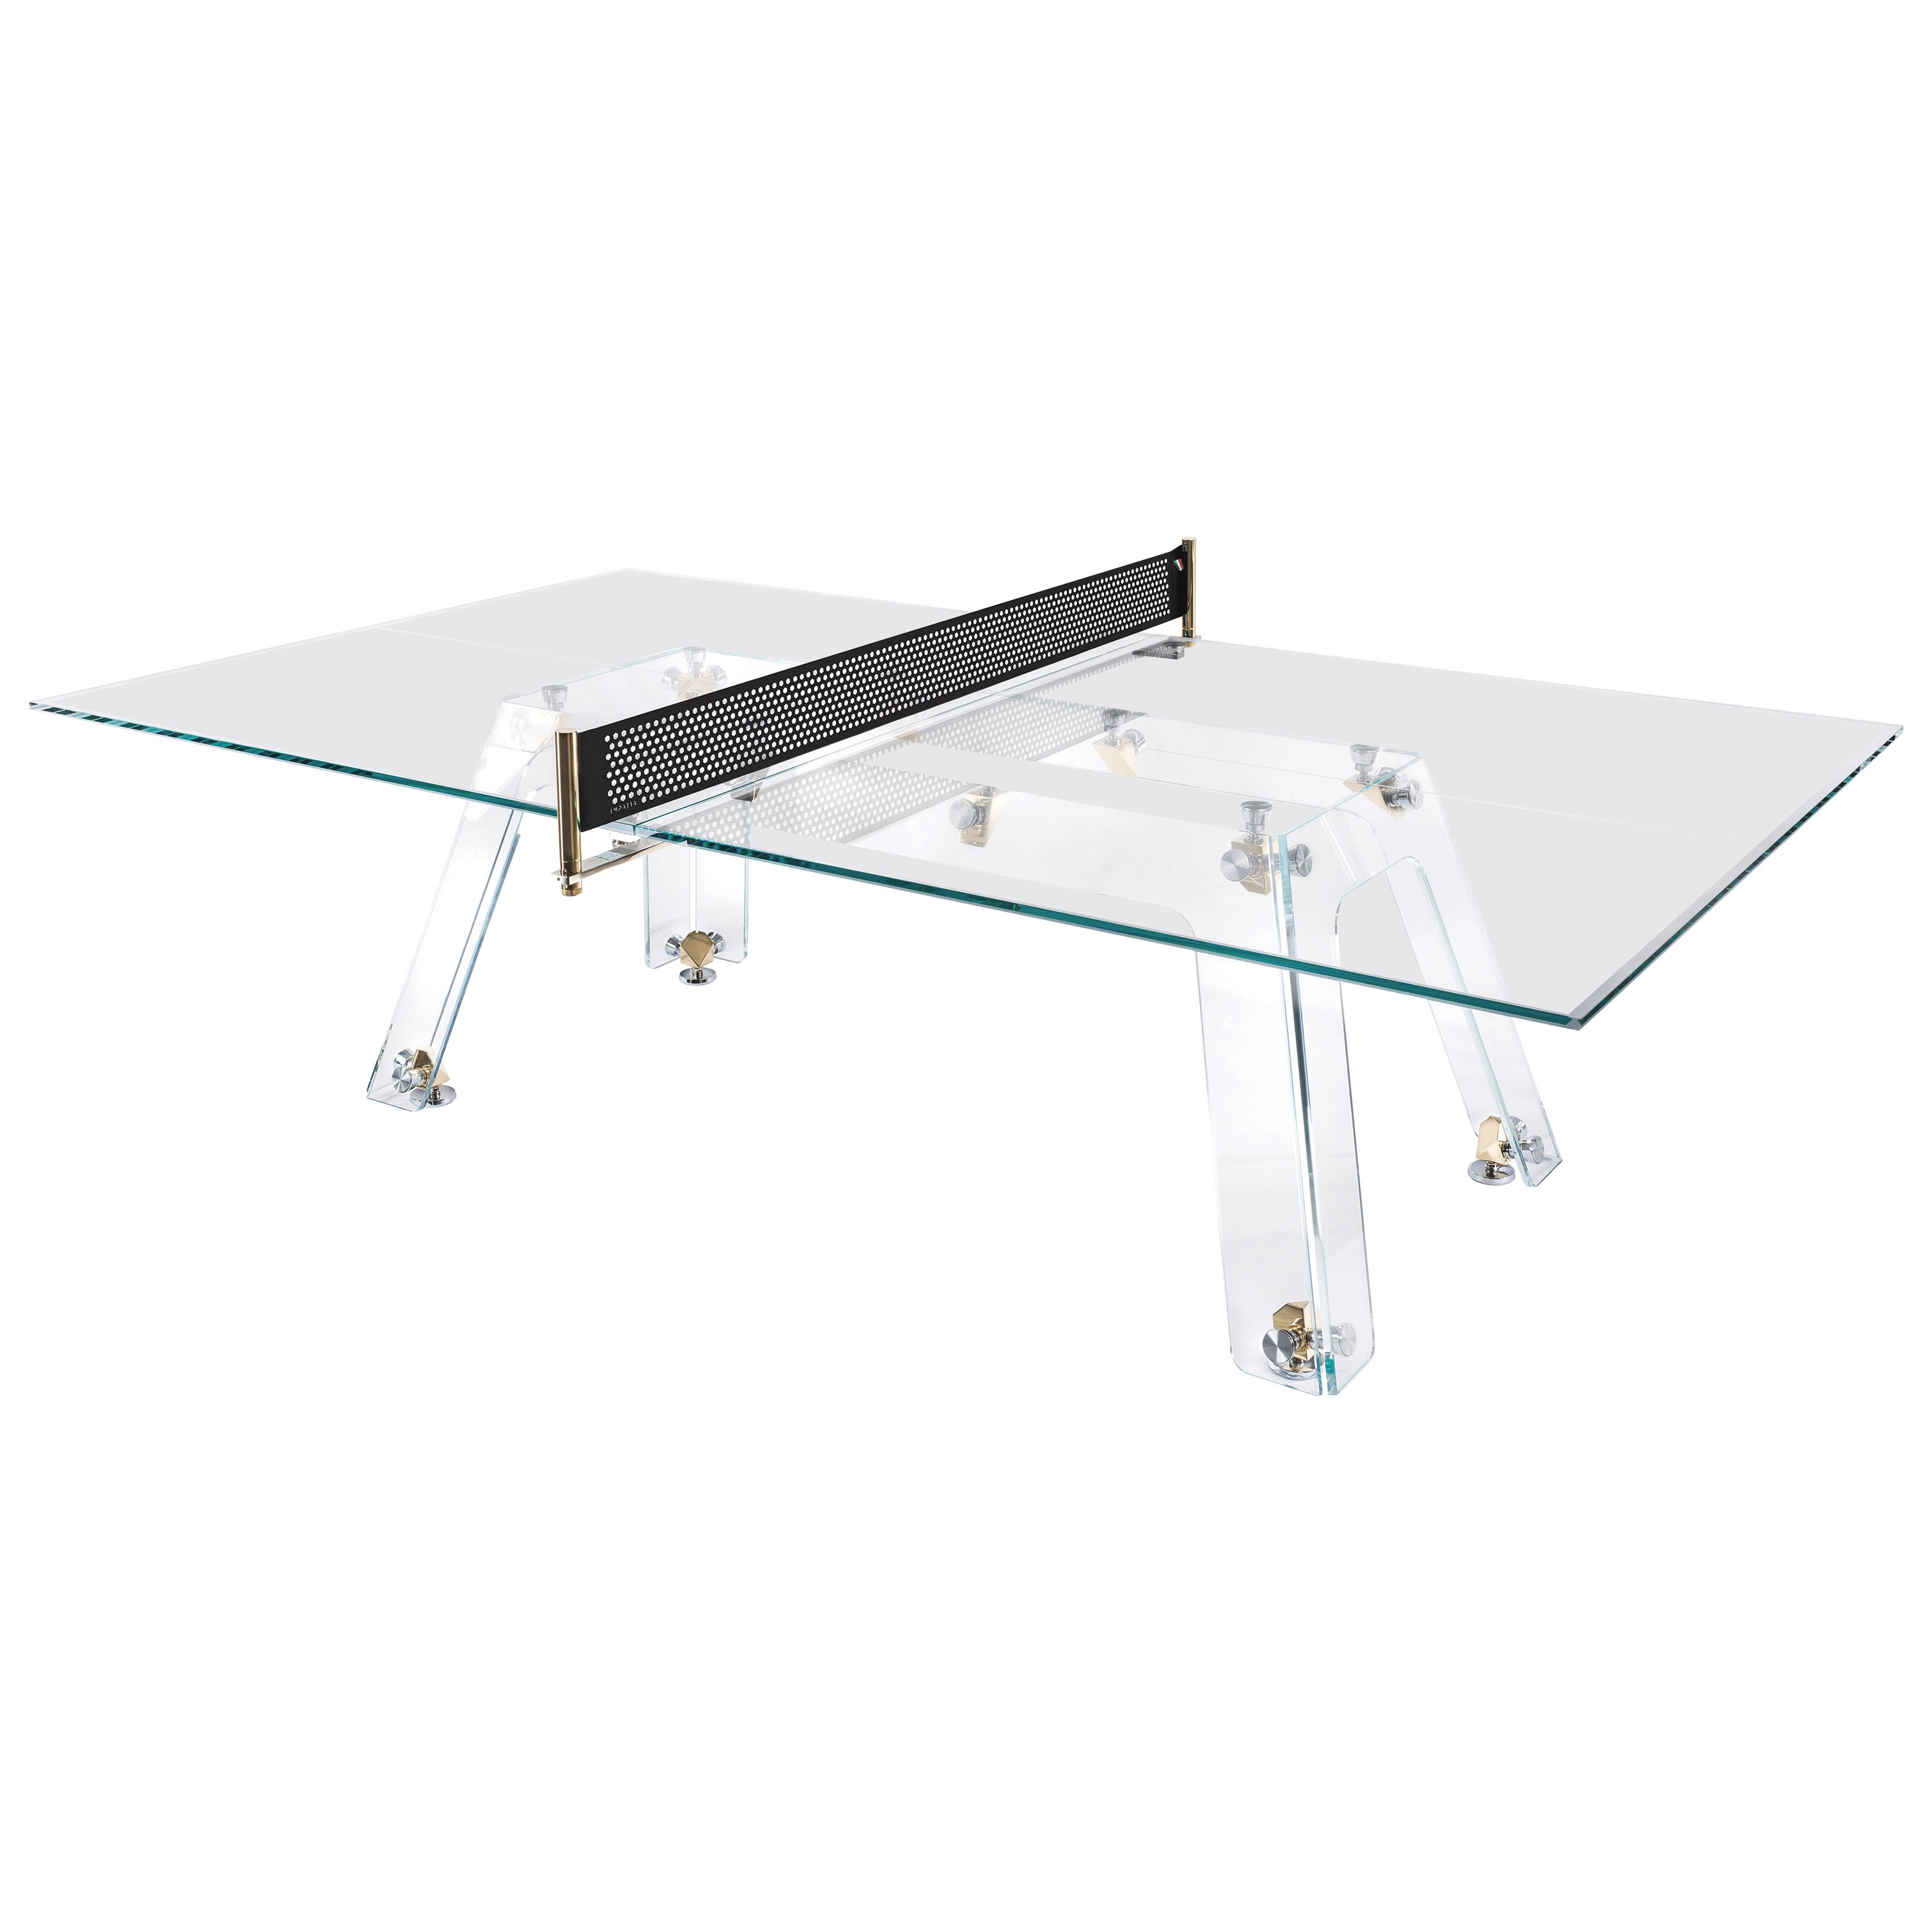 Lungolinea Premium Gold Edition, Ping Pong Table, by Impatia